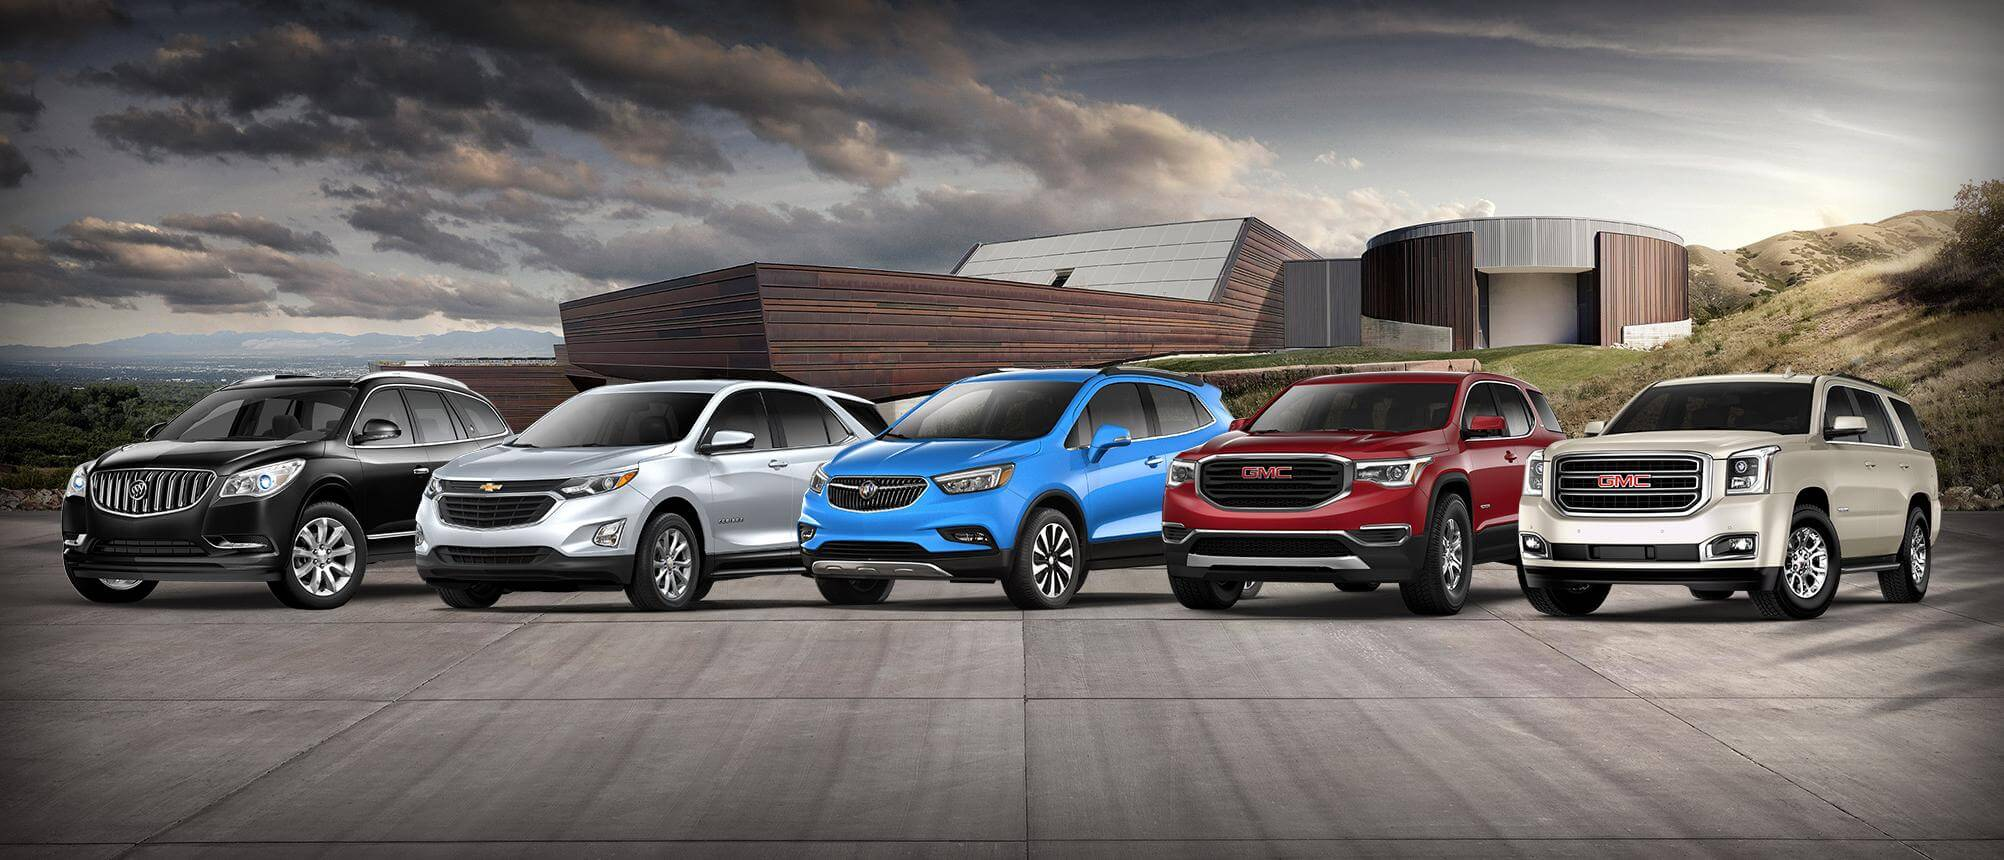 general motors africa and middle east fze